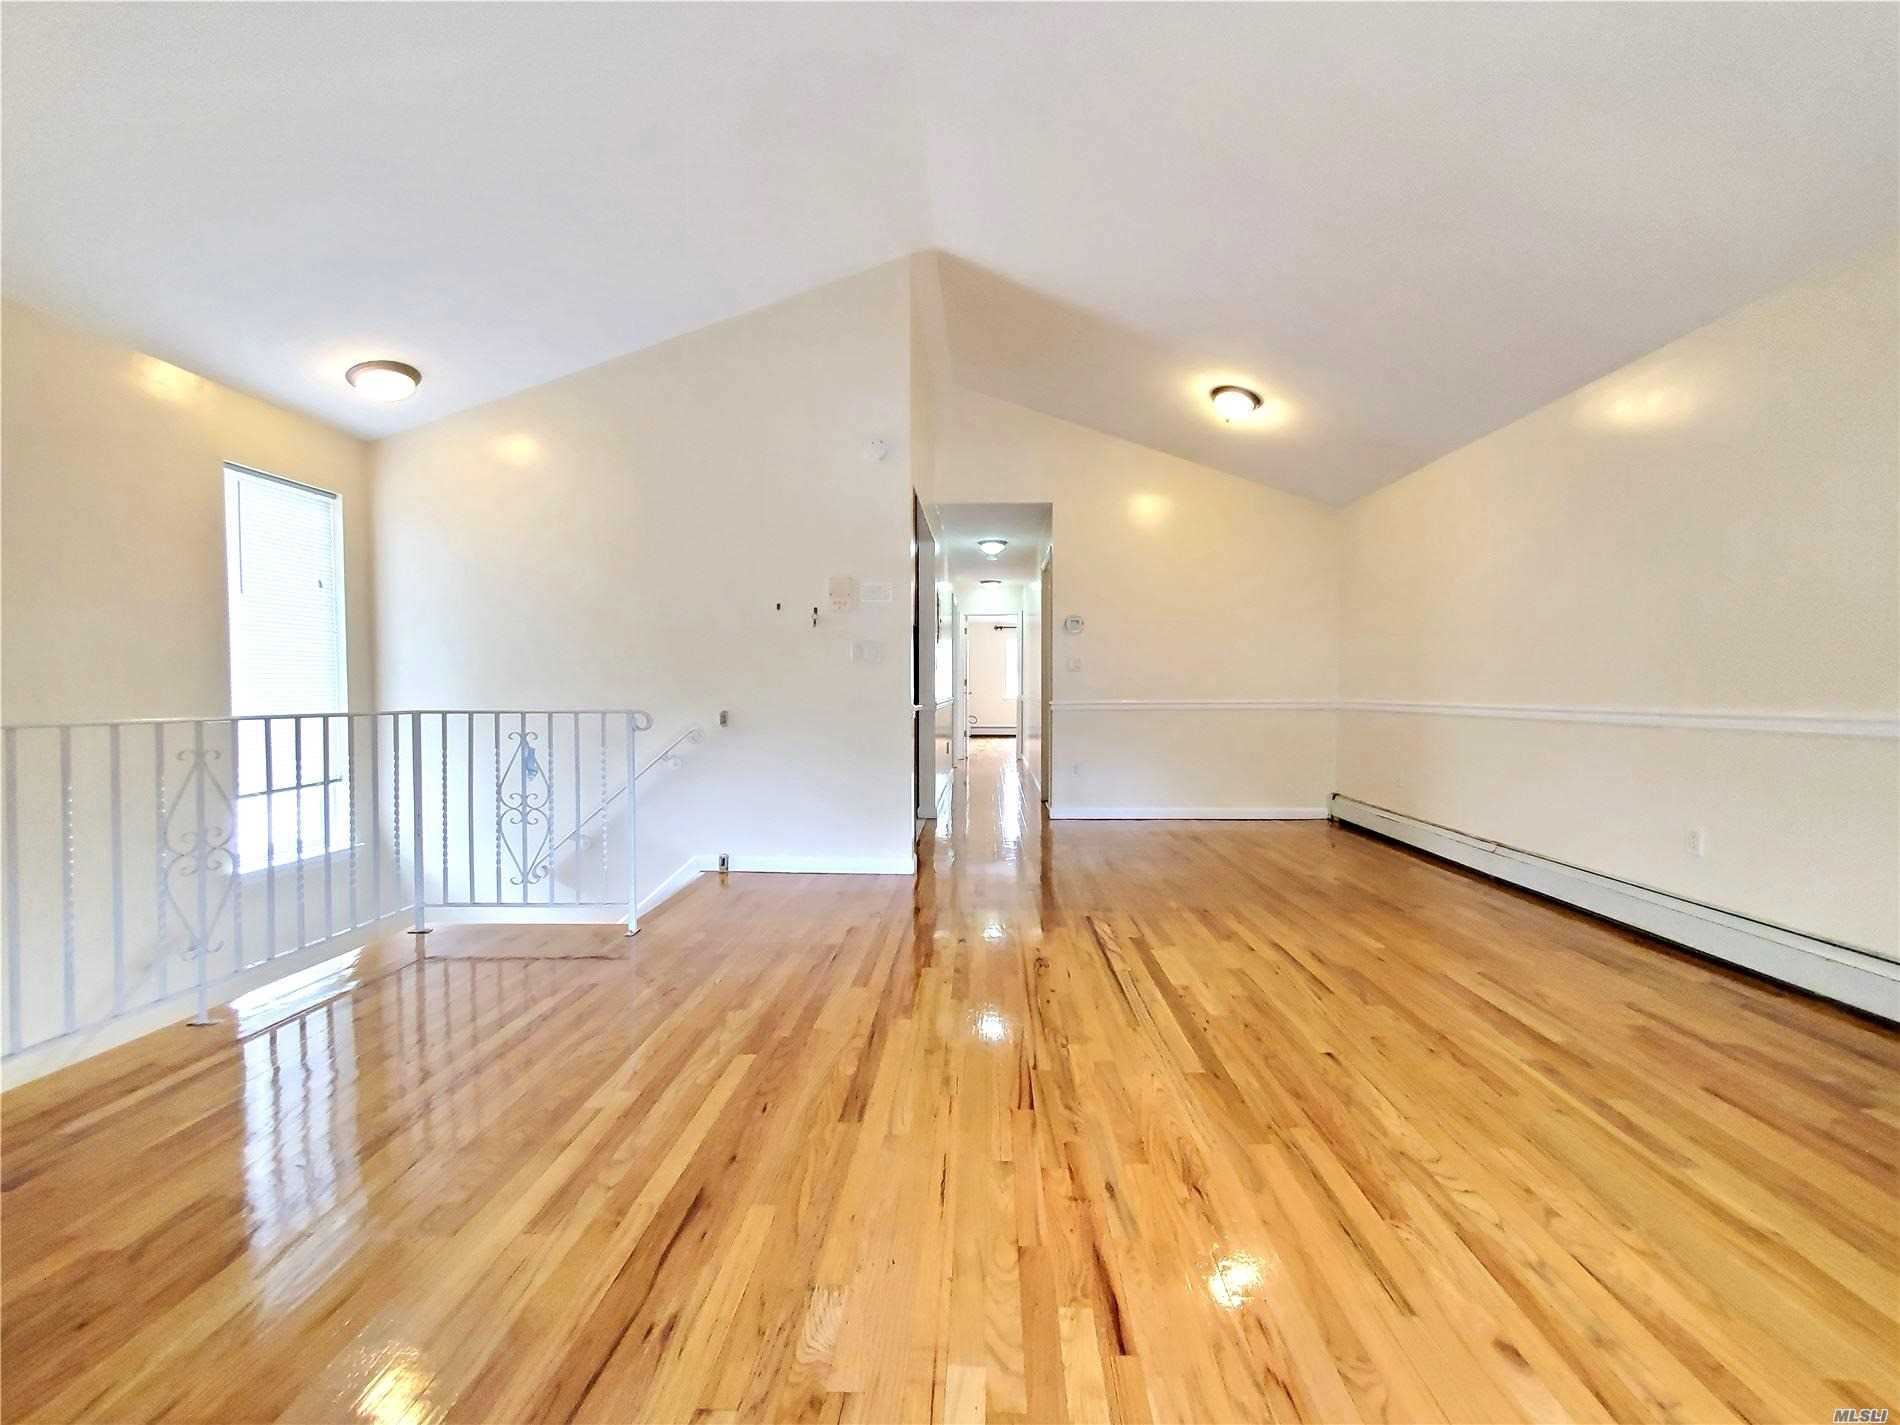 93-06 89 Avenue #2nd Fl, Woodhaven, NY 11421 - MLS#: 3217525